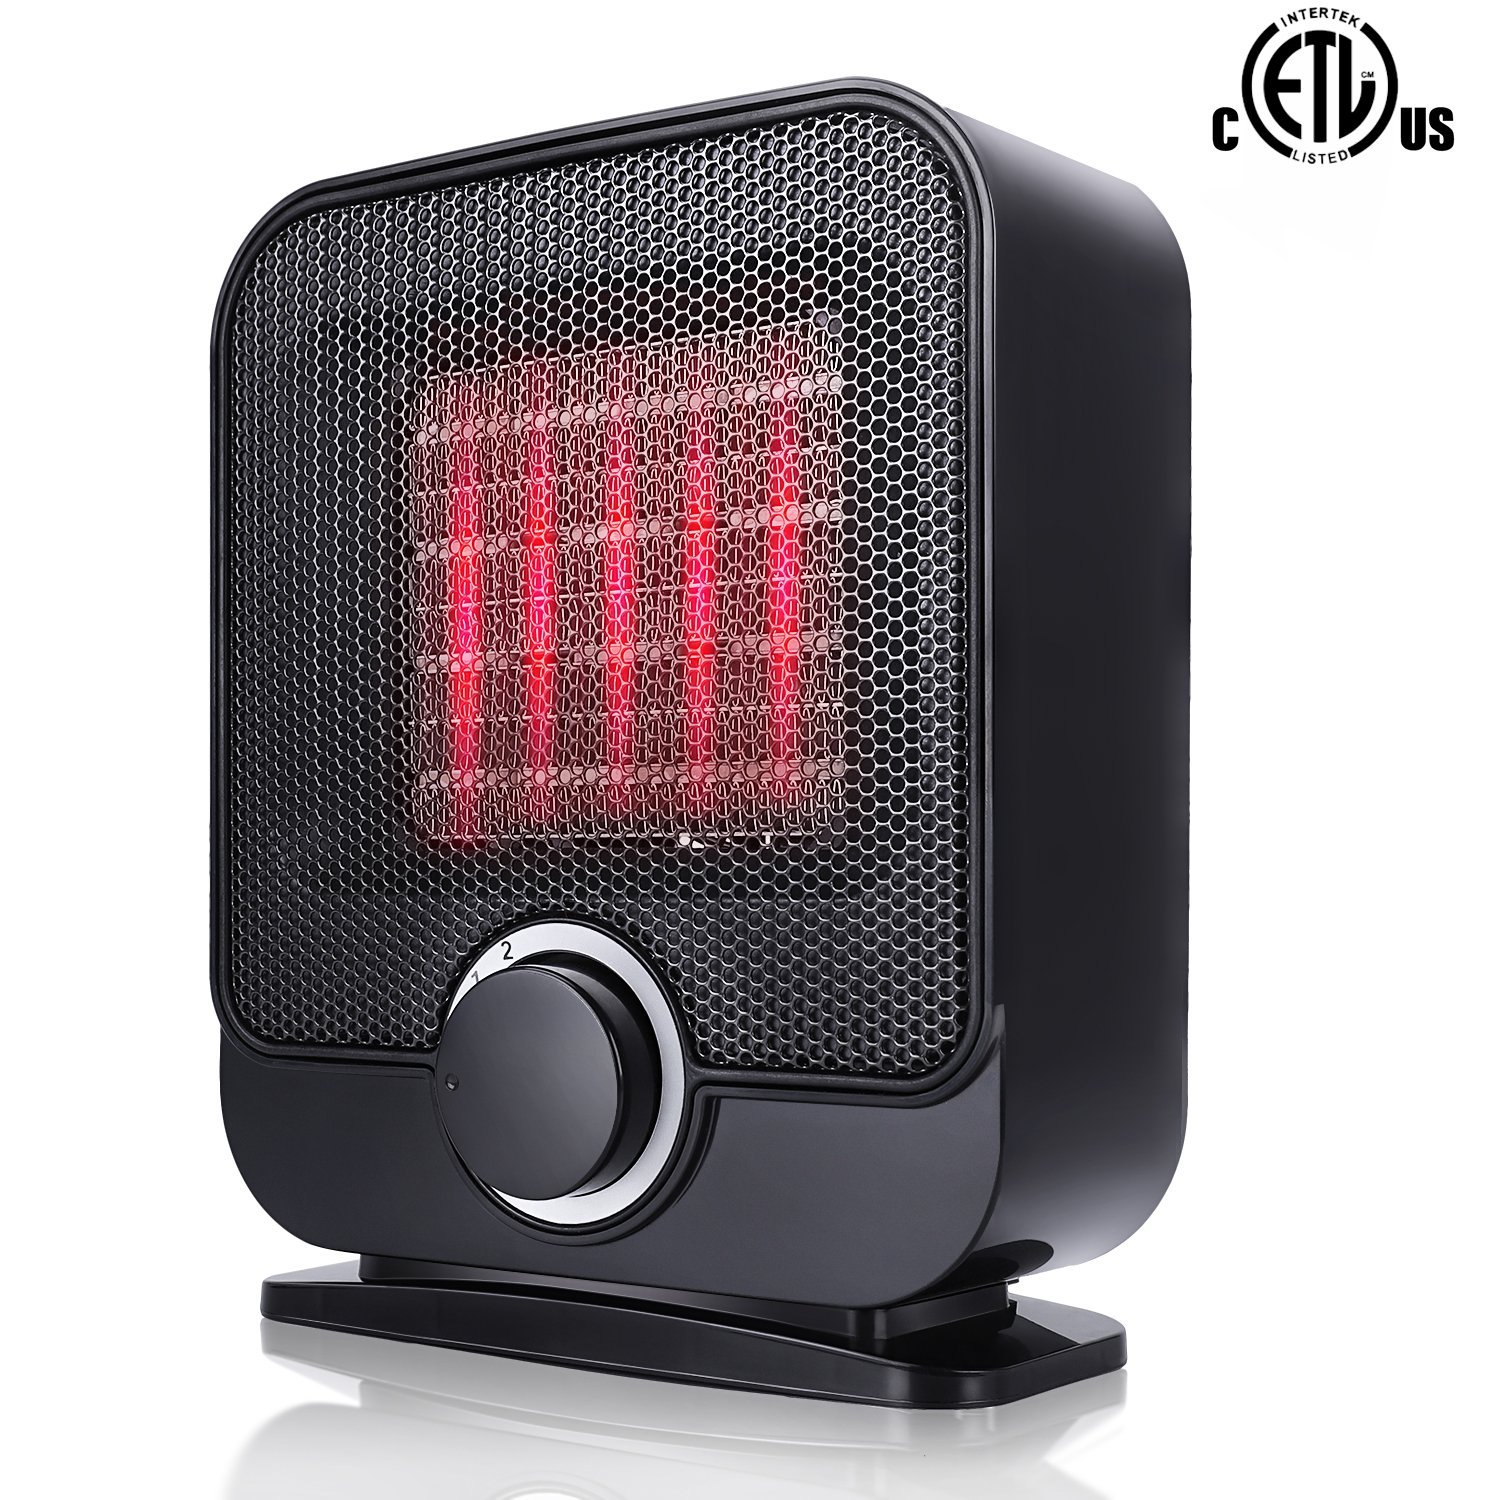 Ceramic Space Heater, Portable Personal Electric Heater, Indoor Small Desk Heater with 3 Setting, Over-Heat and Tip-Over Protection,1500W Mini PTC Heater ETL Safety for Office Desk Floor Room